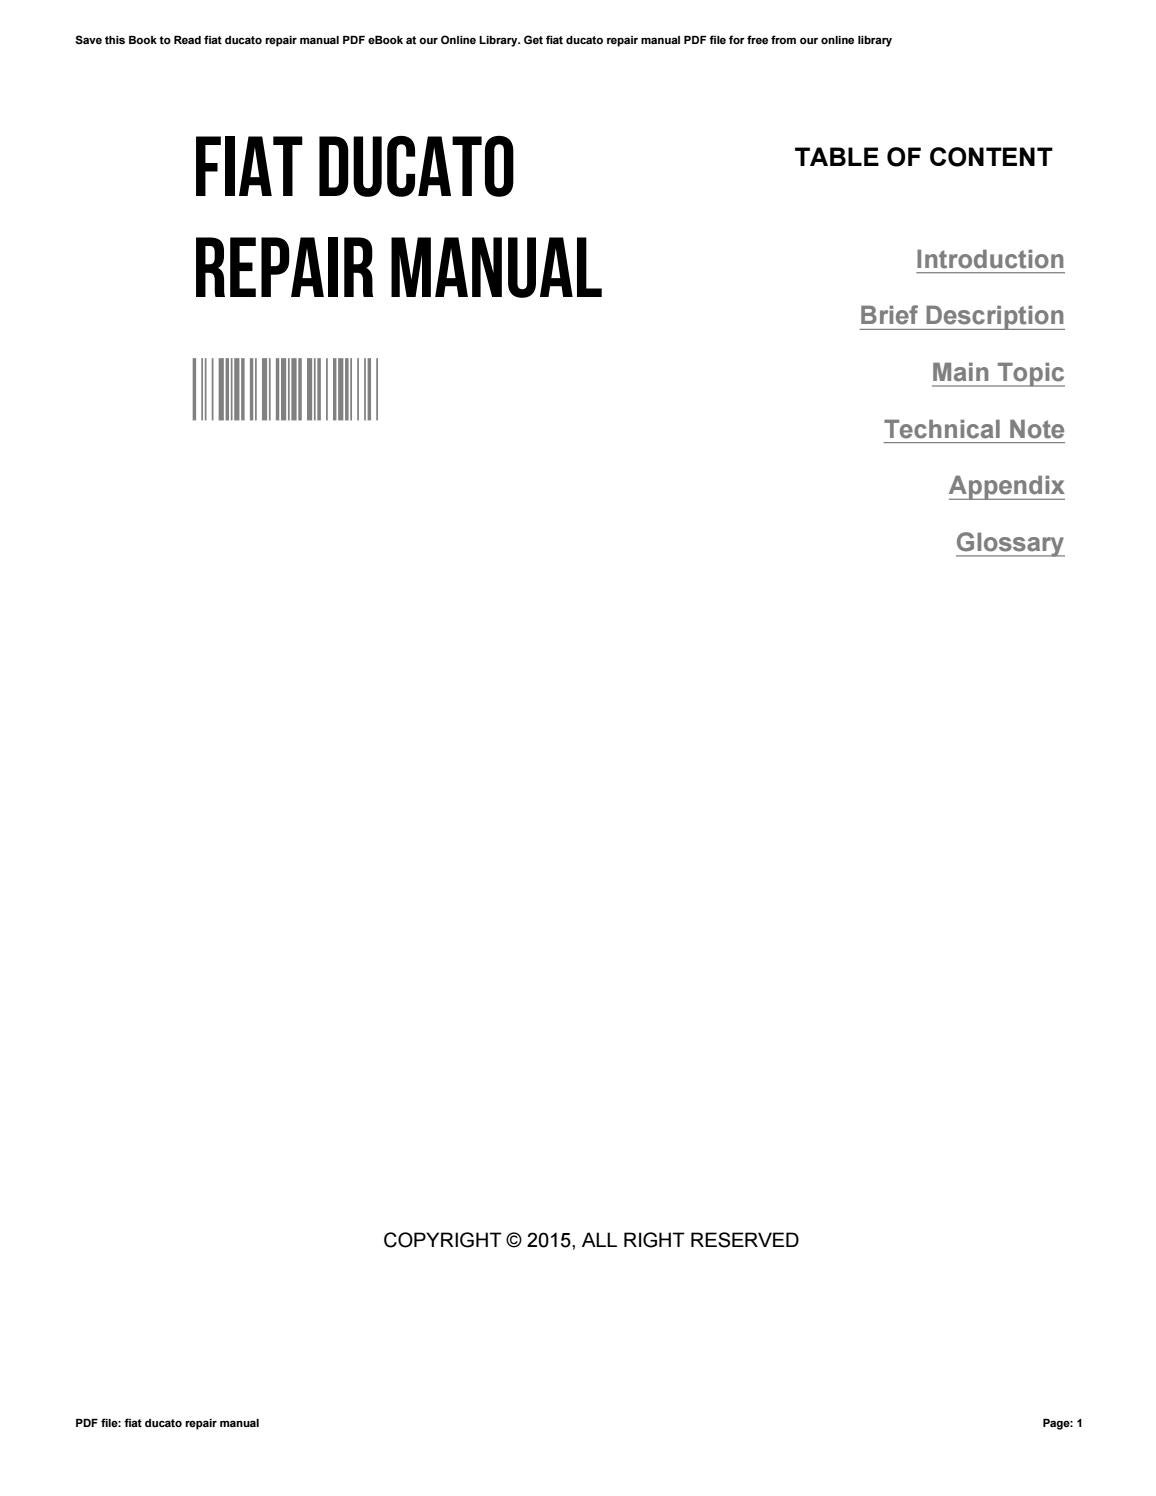 fiat ducato workshop manual ebook